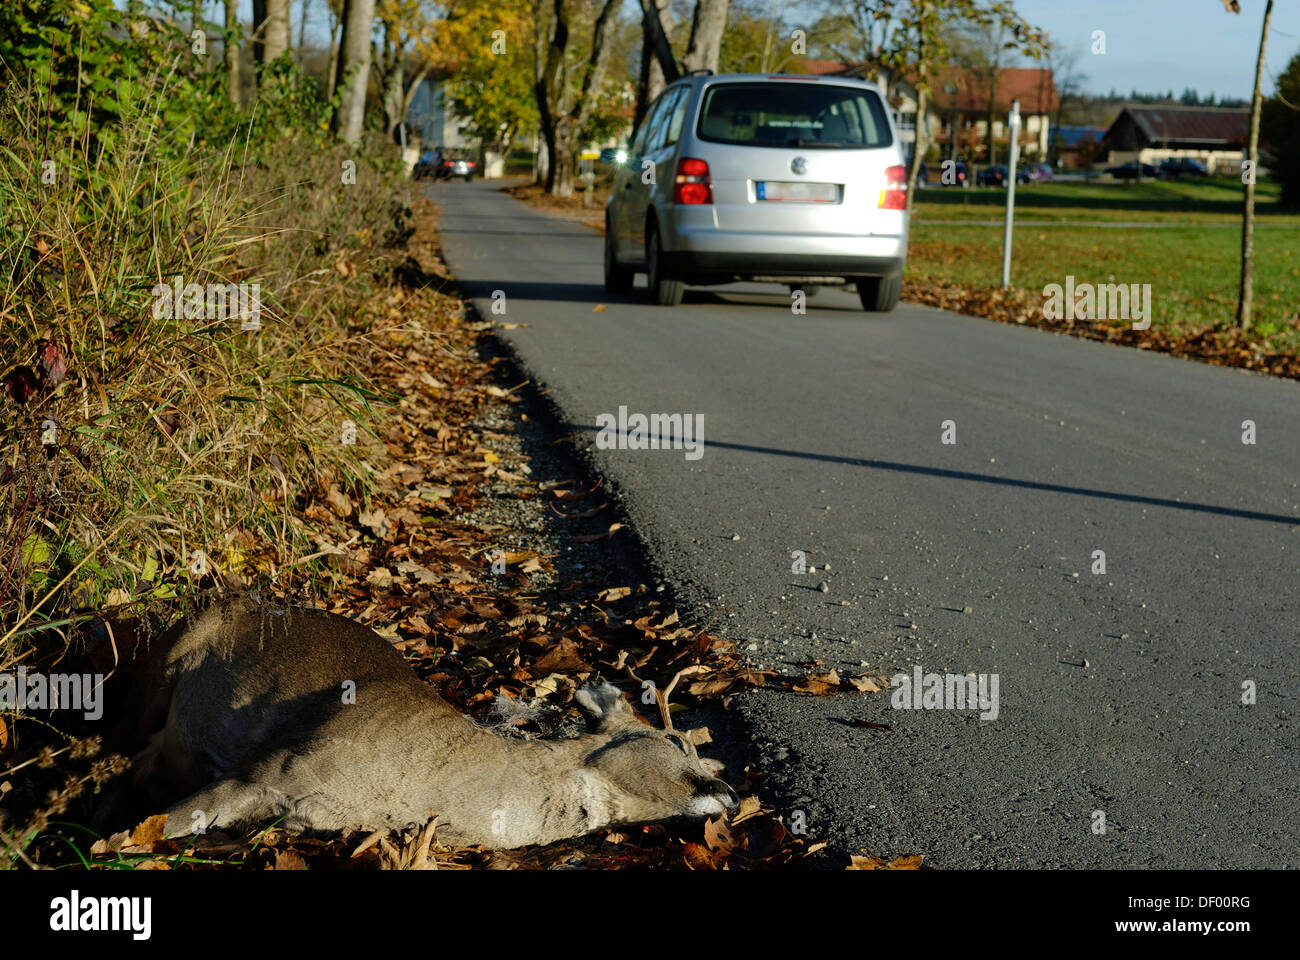 Dead deer on the roadside, animal-vehicle accident, run-over deer - Stock Image